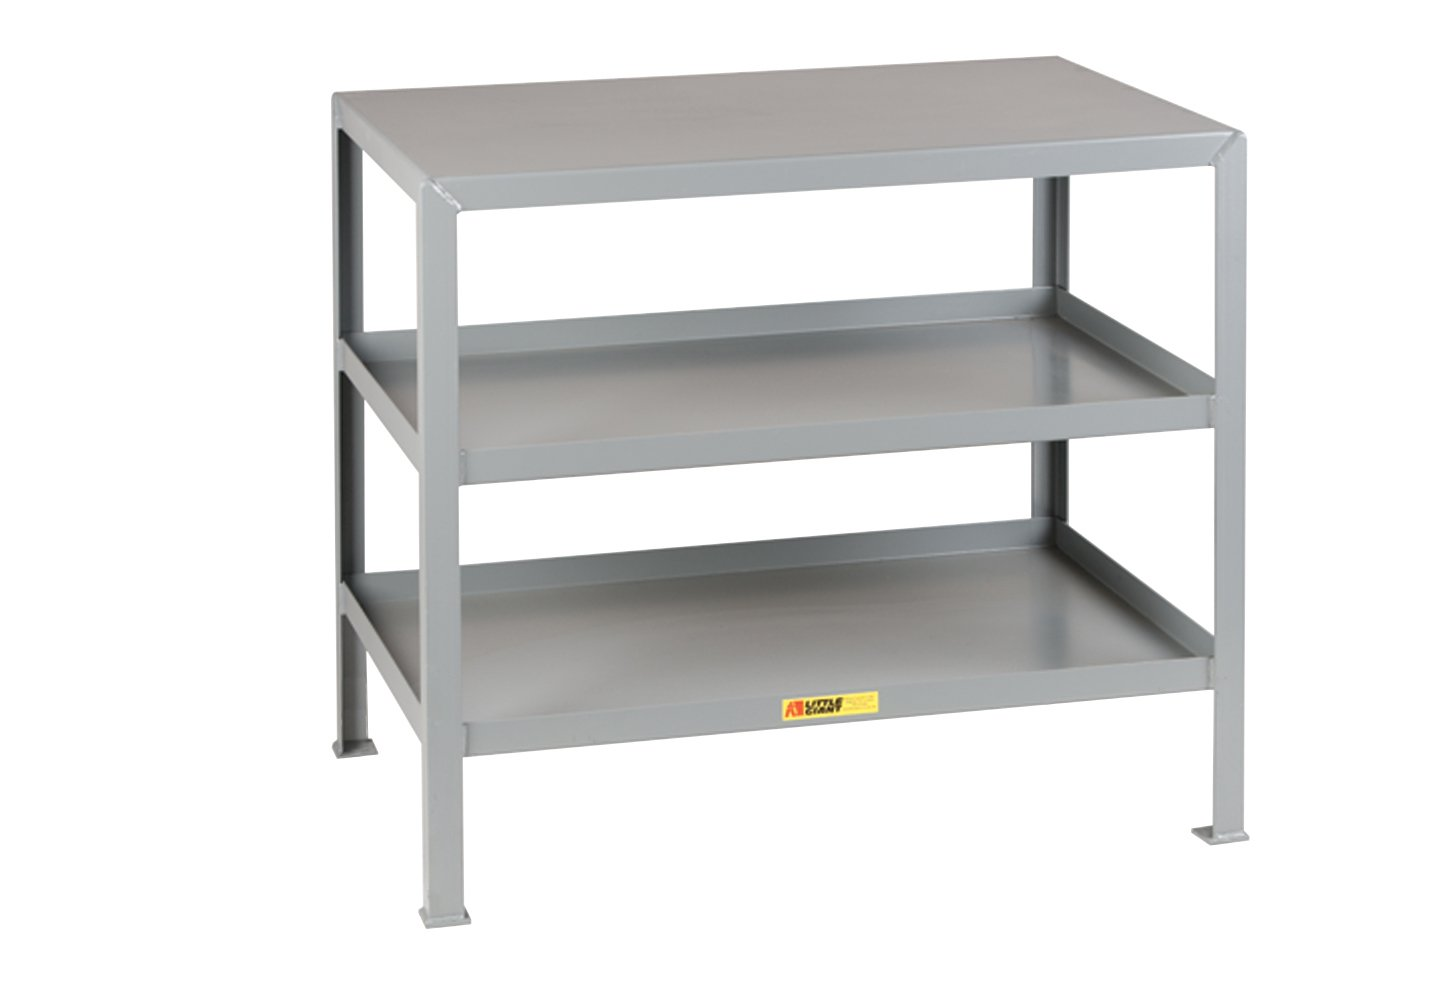 Little Giant MT1824-3 Welded Steel Multi-Shelf Machine Table, Top and 2 Lower Shelves, 2000 lb. Load Capacity, 32-1/2'' x 24'' x  18'', Gray